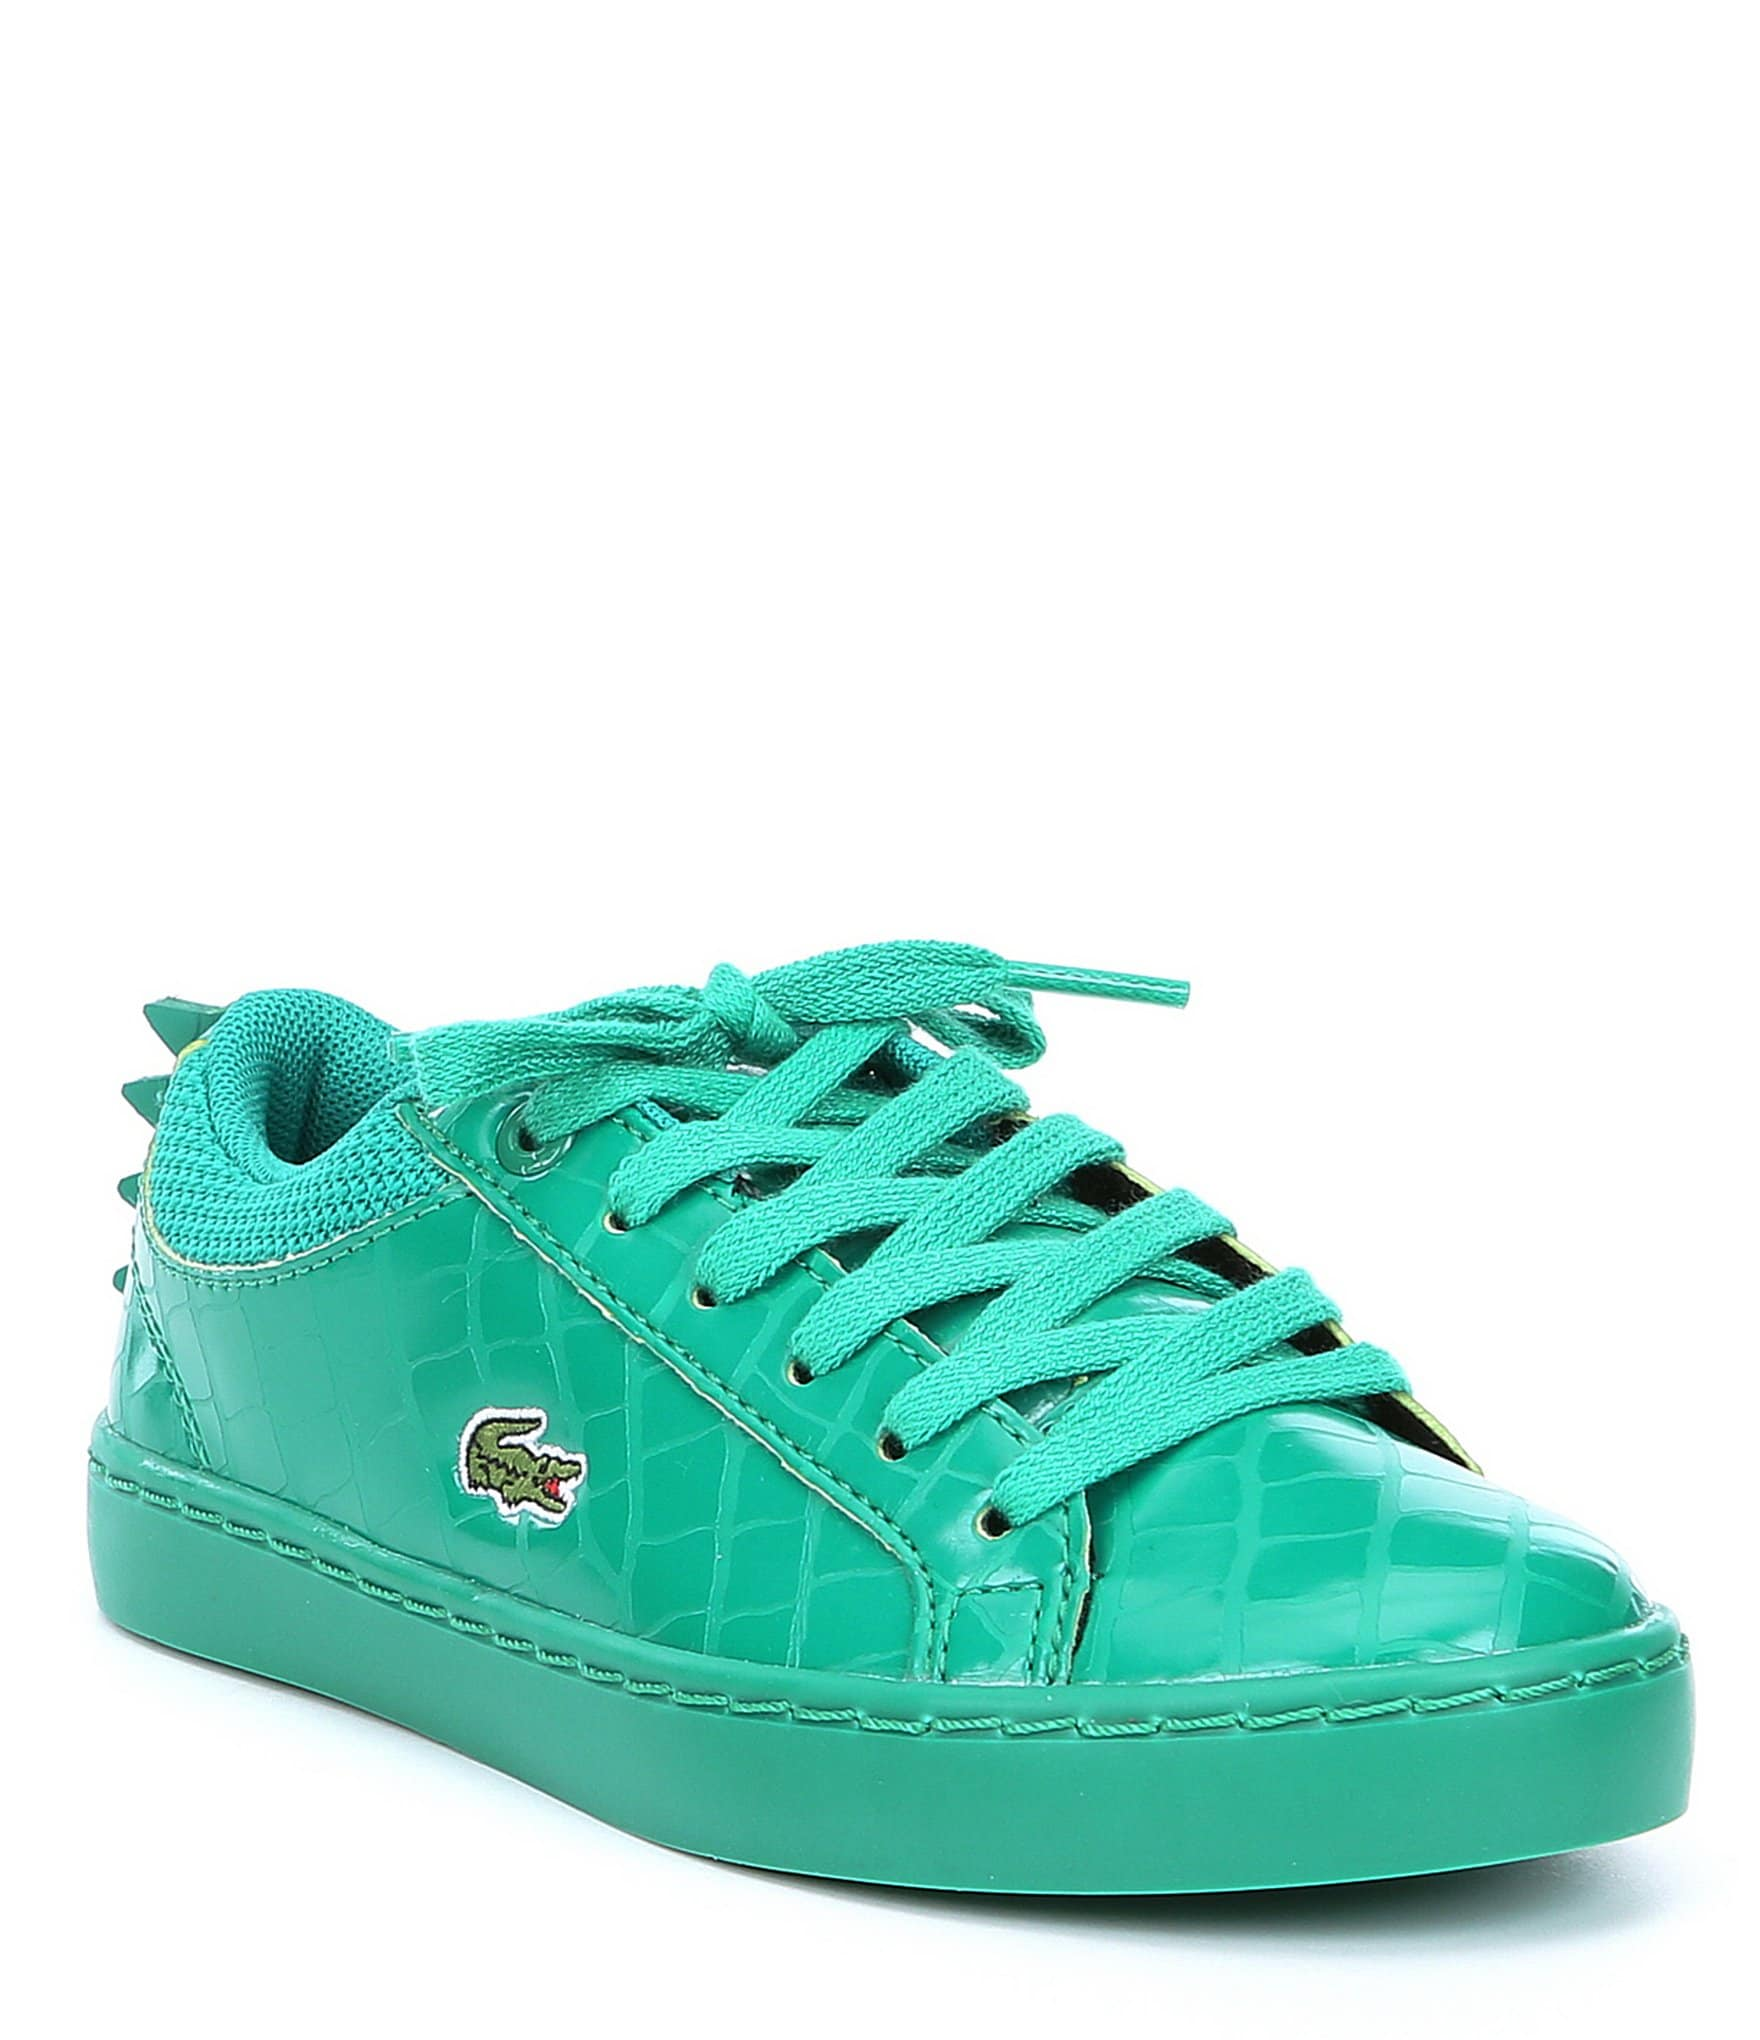 4f9586110 Green Lacoste Shoes for Women